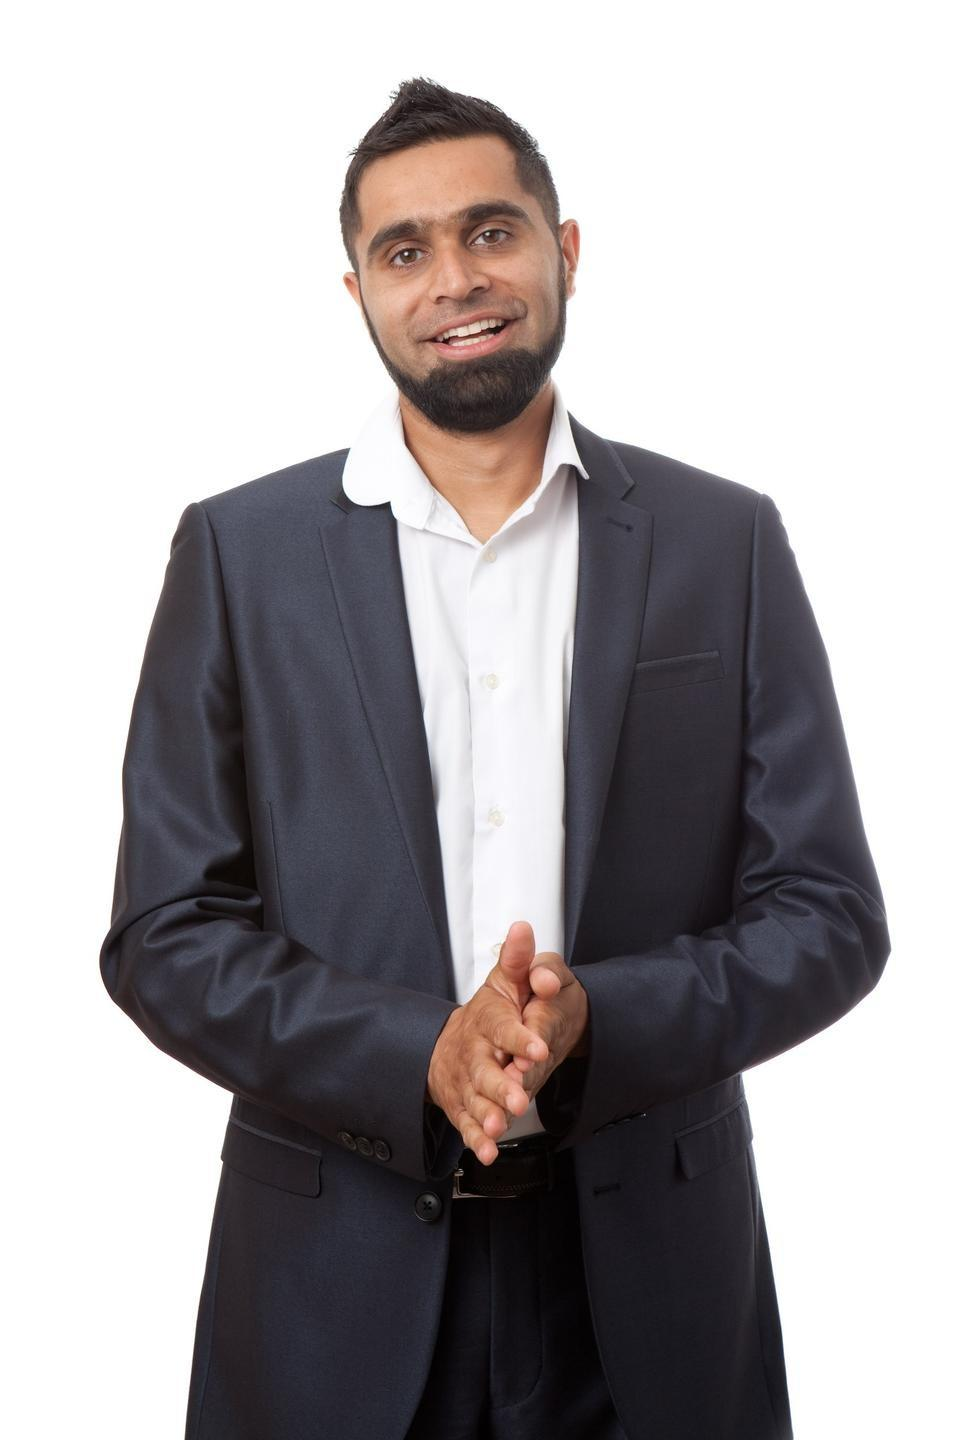 Ehtesham Patel - Driving School Owner